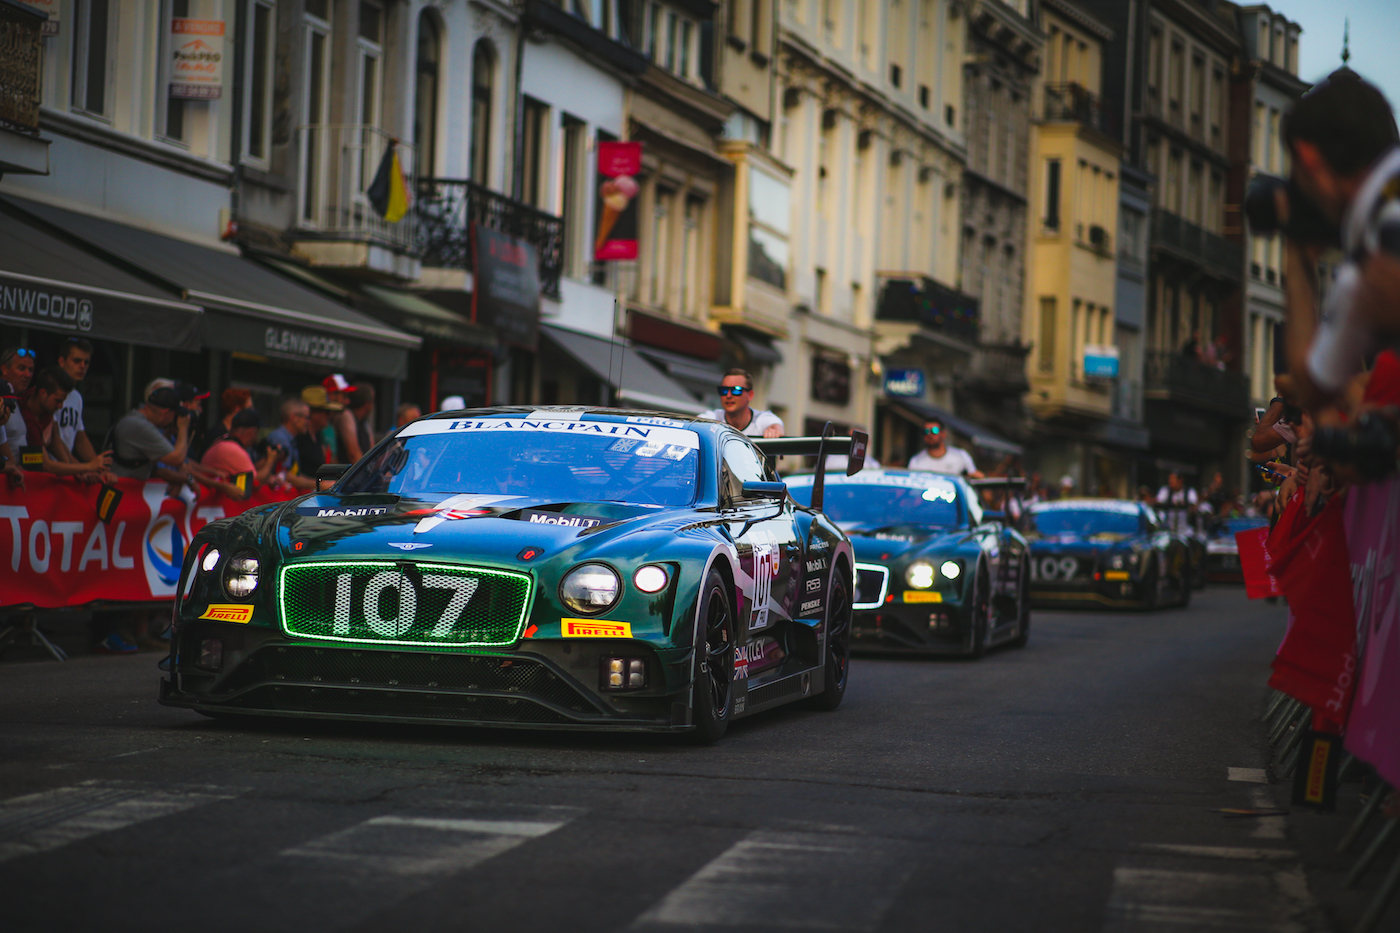 Total 24 Hours of Spa - Photo by Vincent Franken